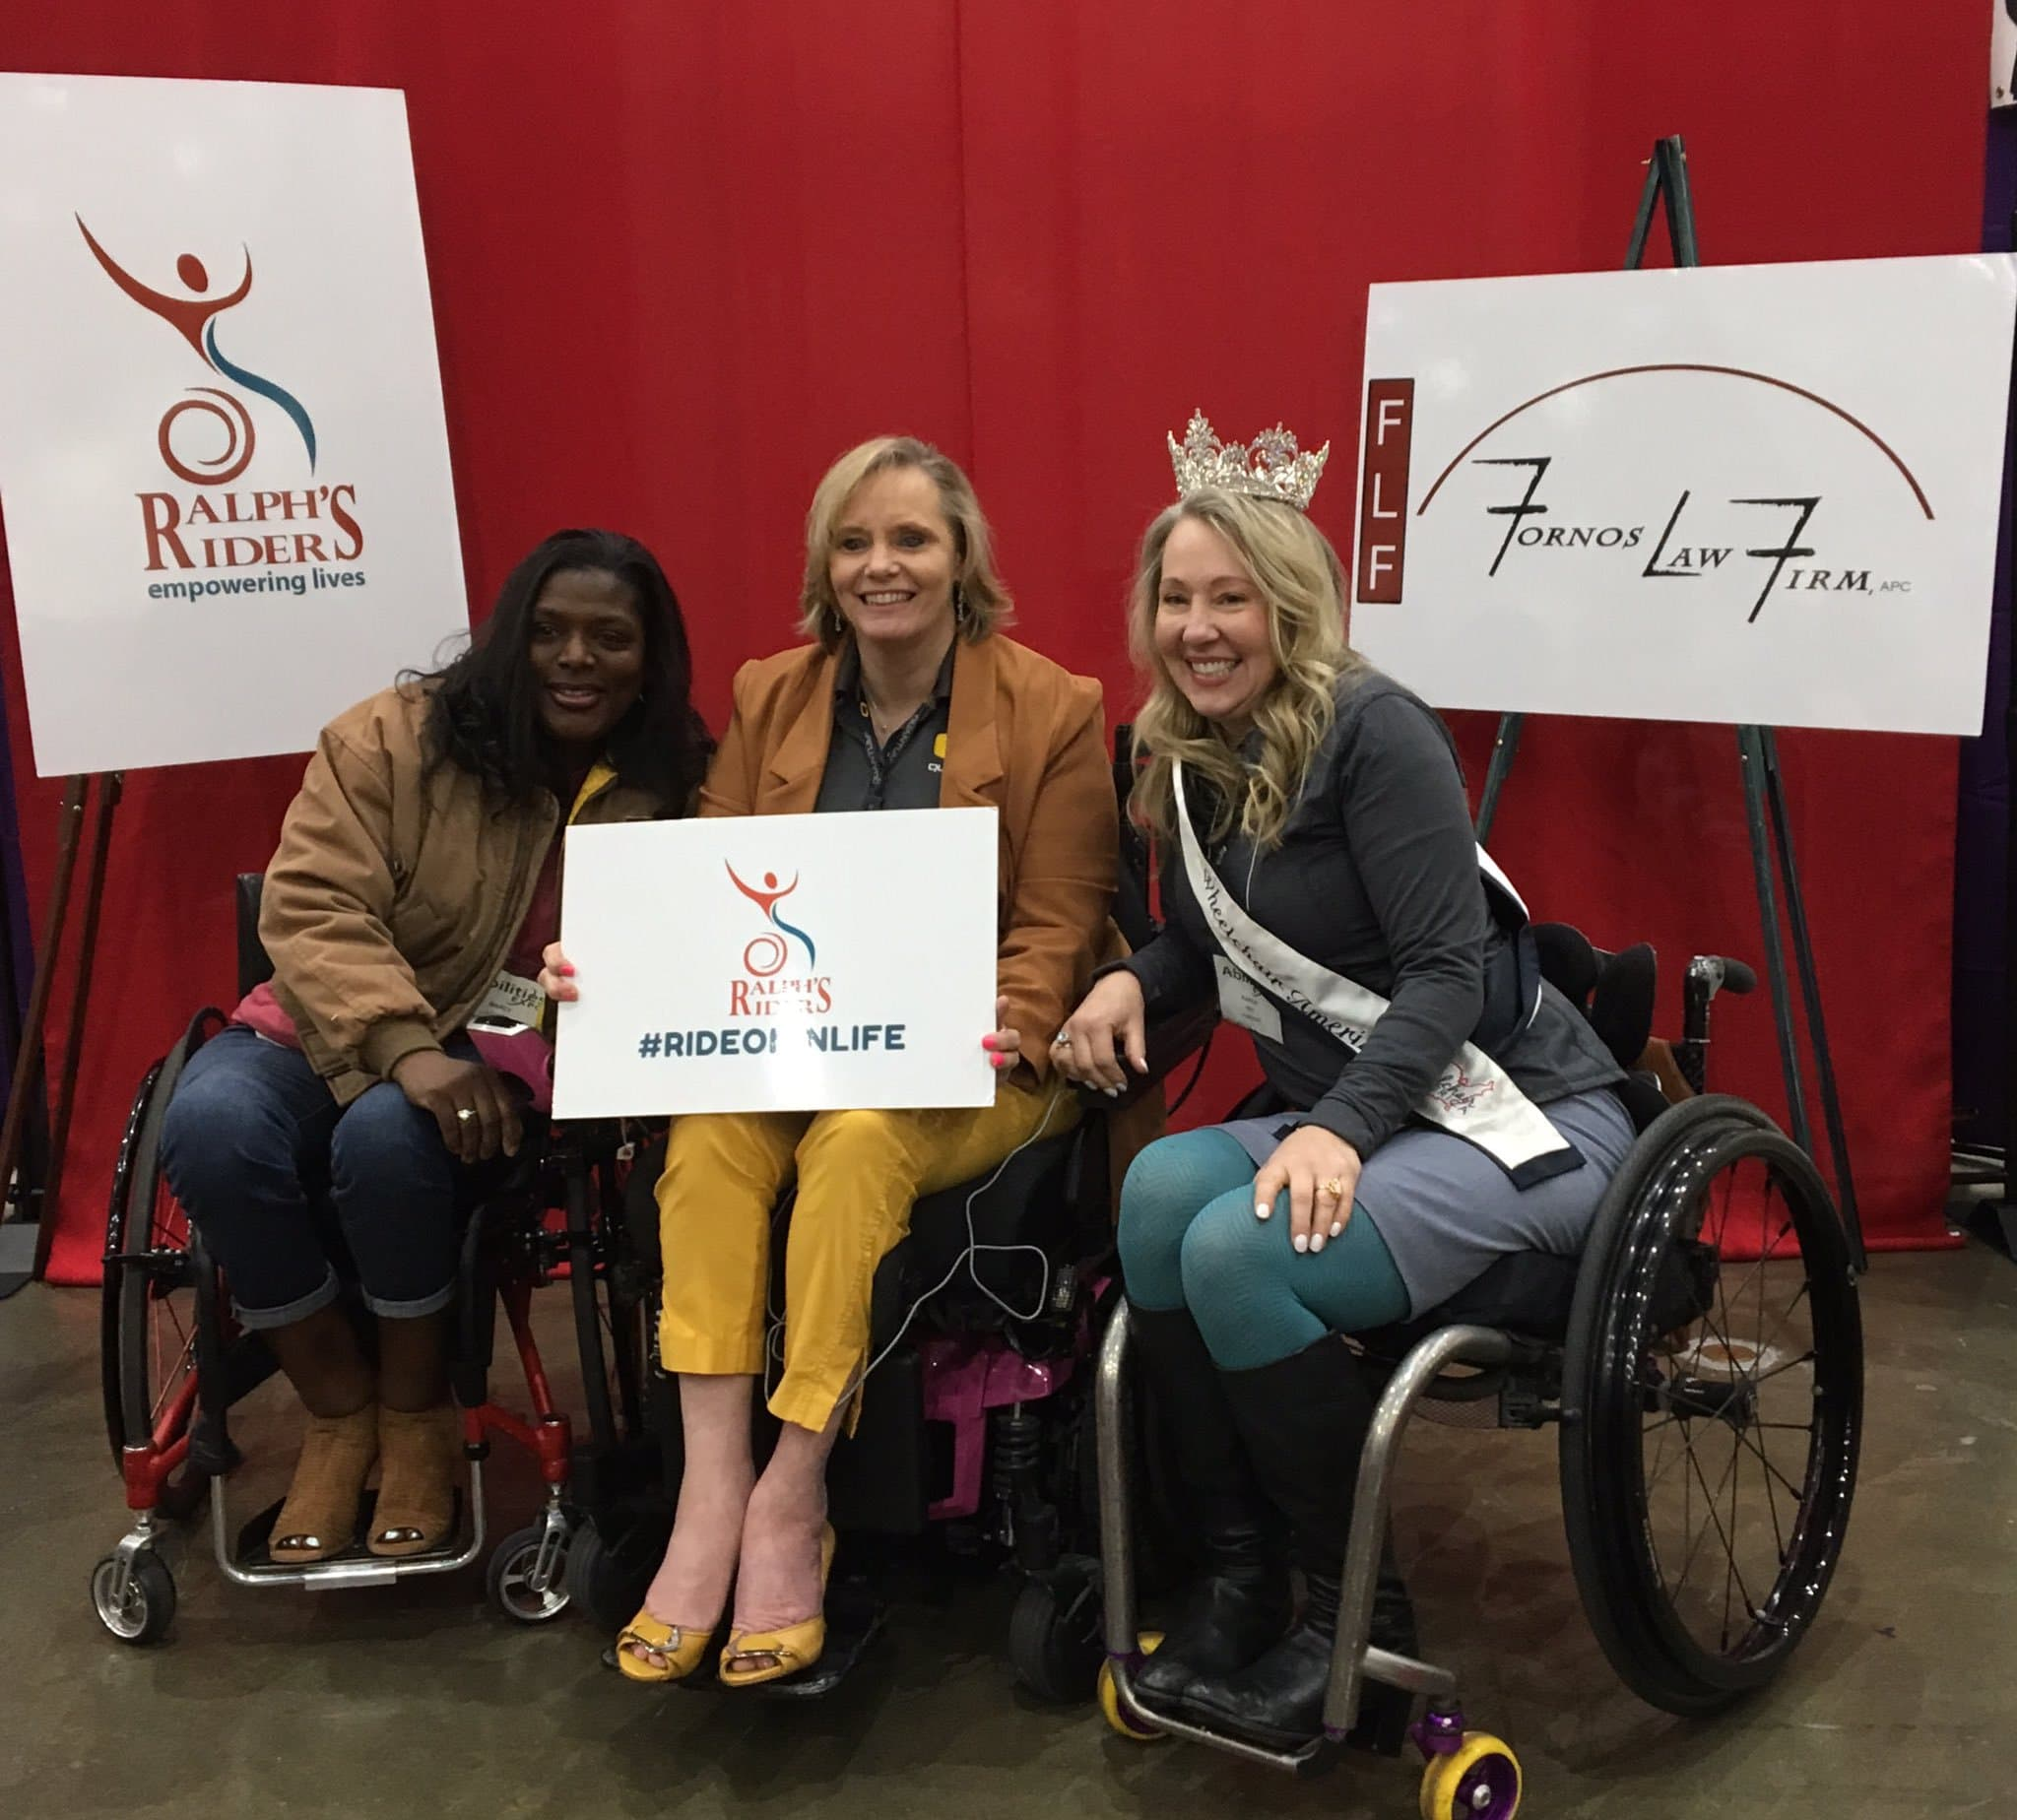 Three women in wheelchairs in front of Ralph's Riders and Fornos Law signs. One is holding a #rideoninlife sign.